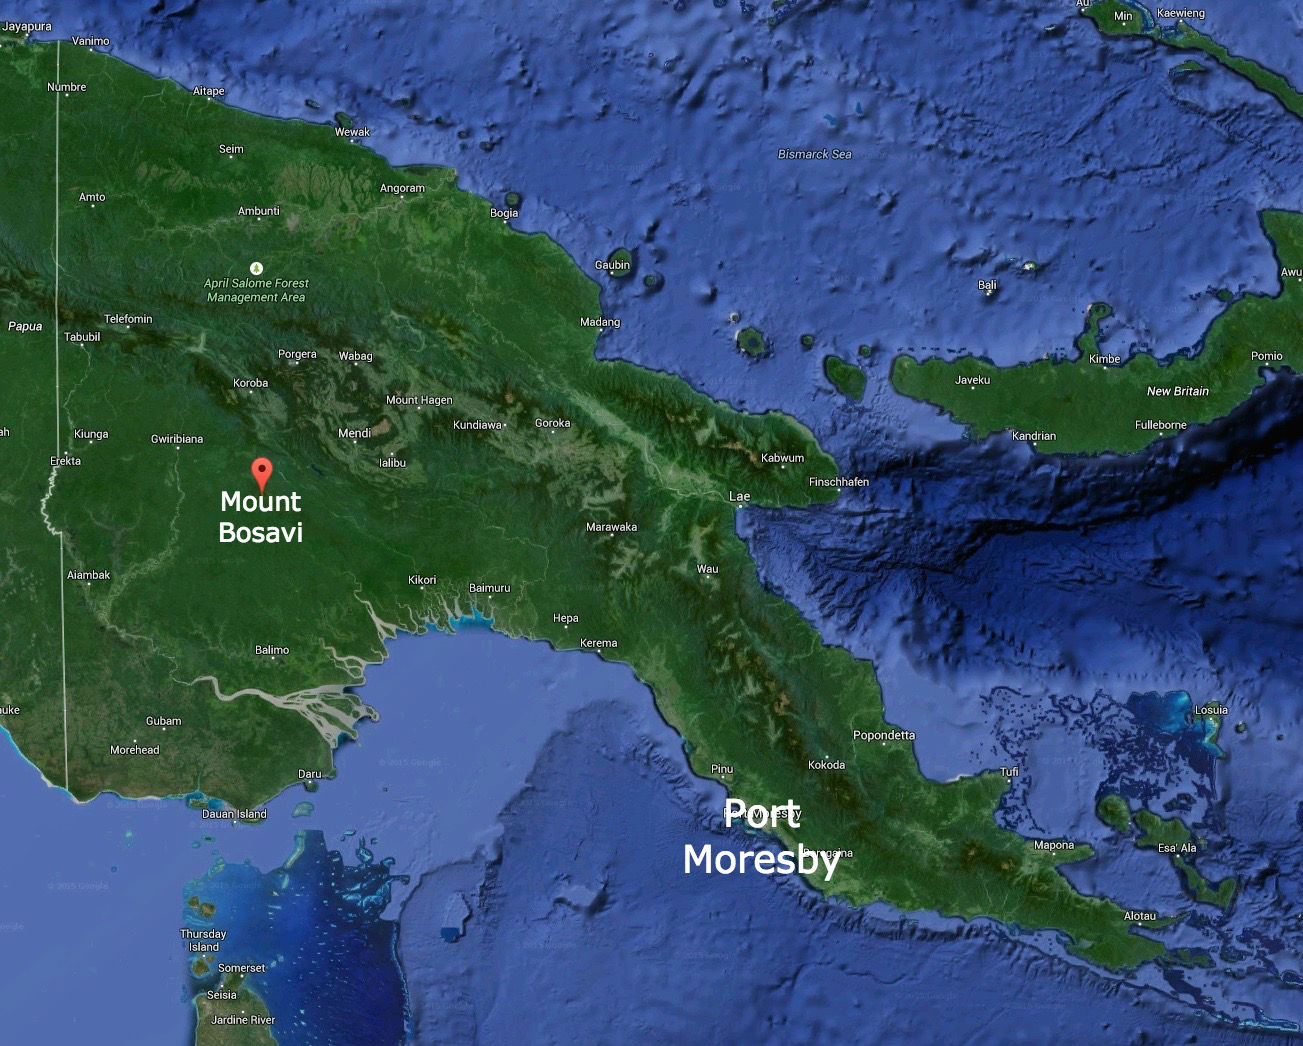 Mount Bosavi In Relation To The Capital City, Port Moresby, Papua New Guinea